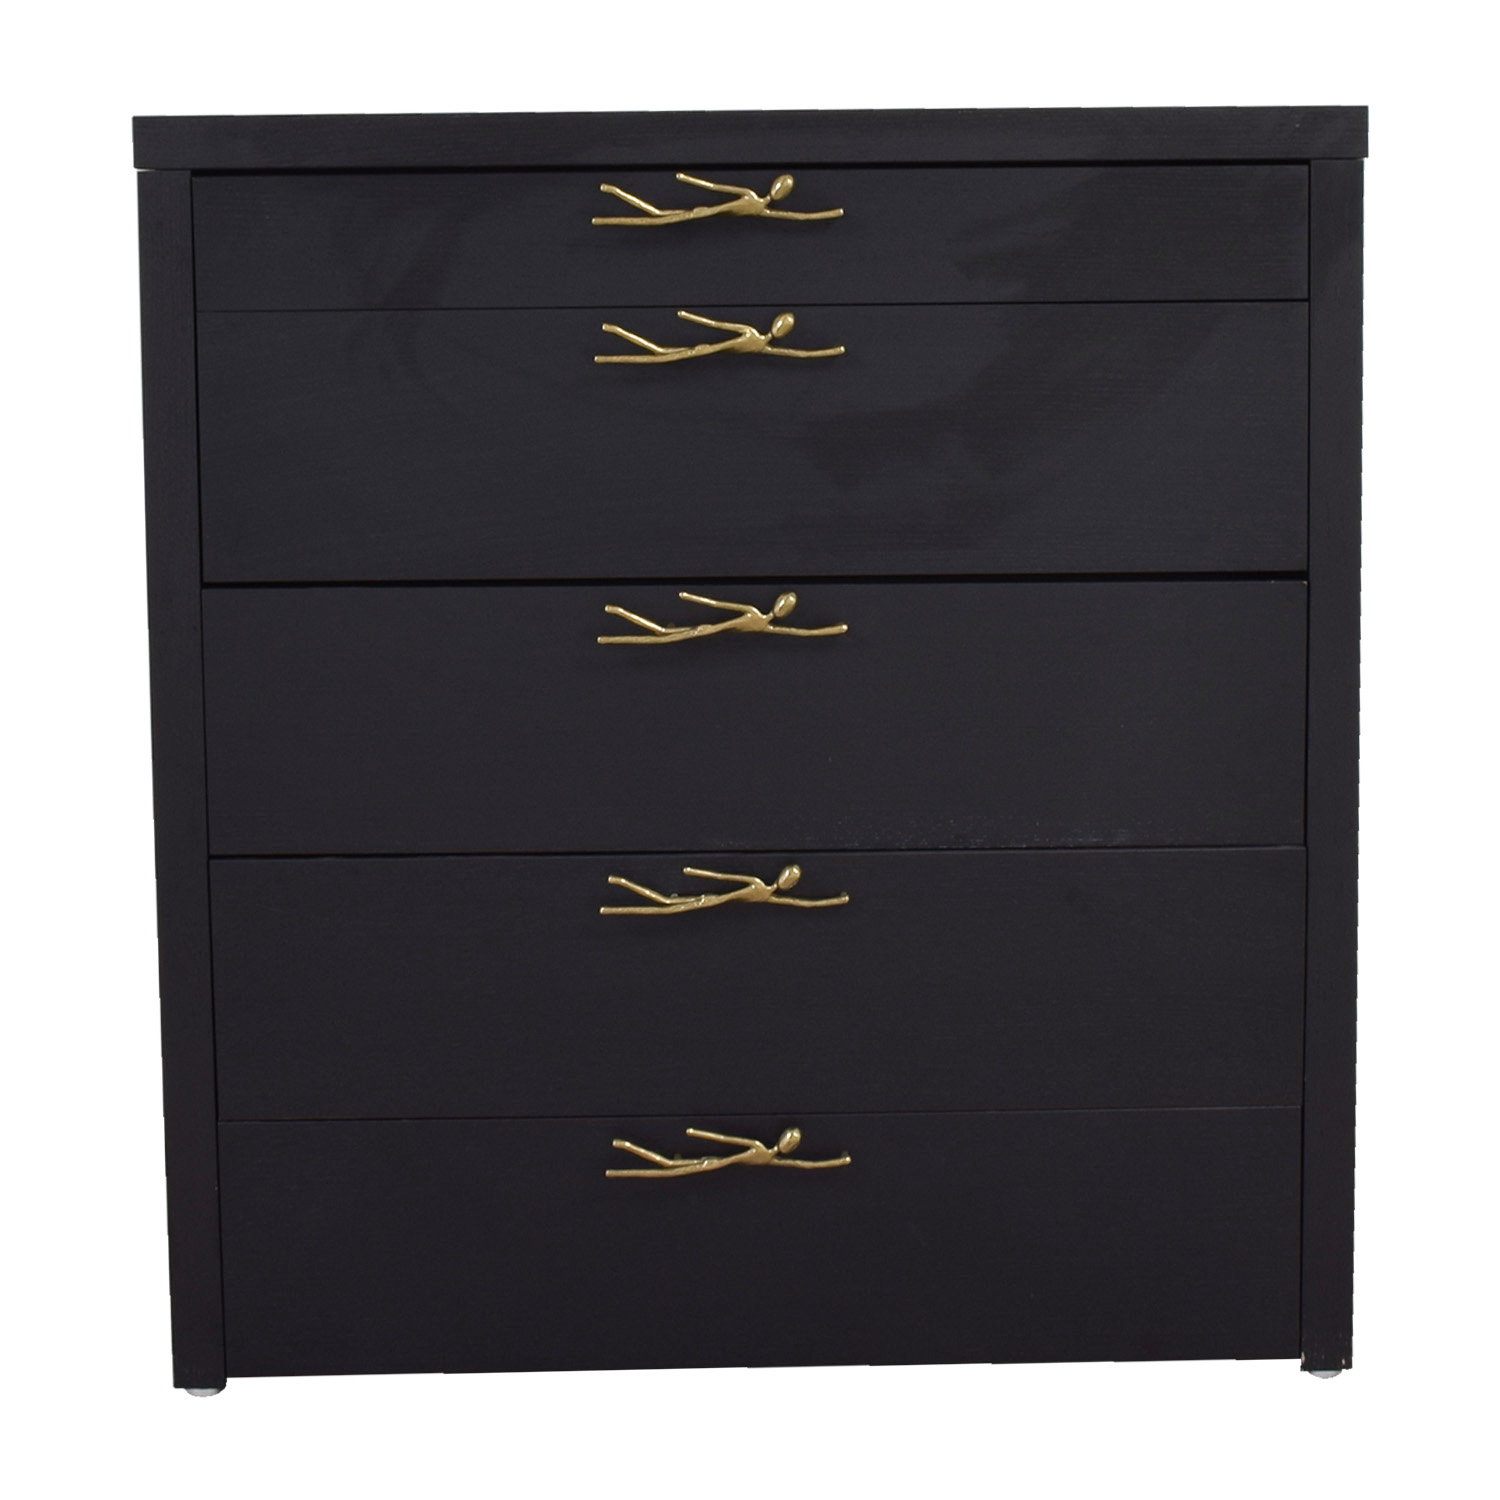 Black Wood Five-Drawer Dresser with Brass Swimmer Hardware